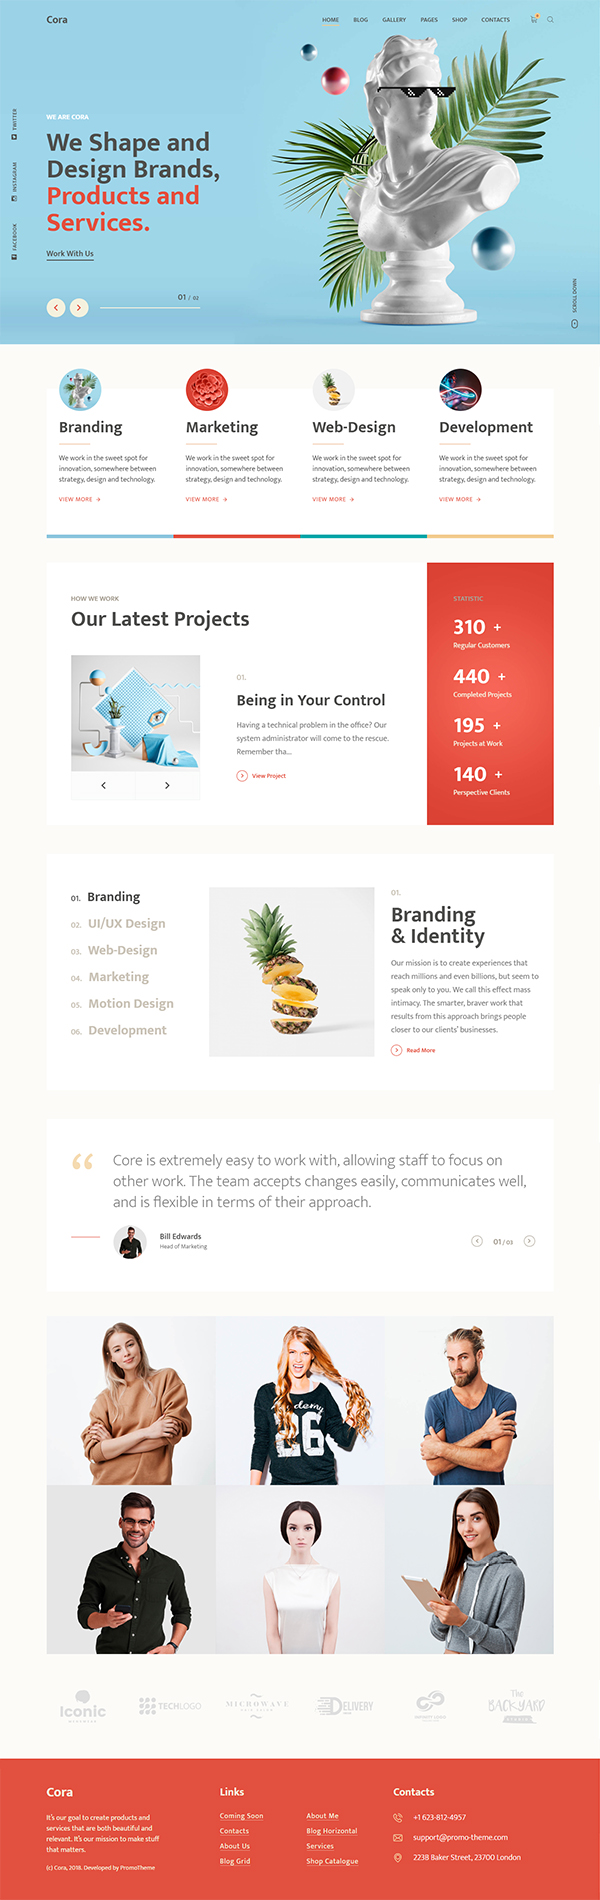 Cora | A Creative MultiPurpose WordPress Theme